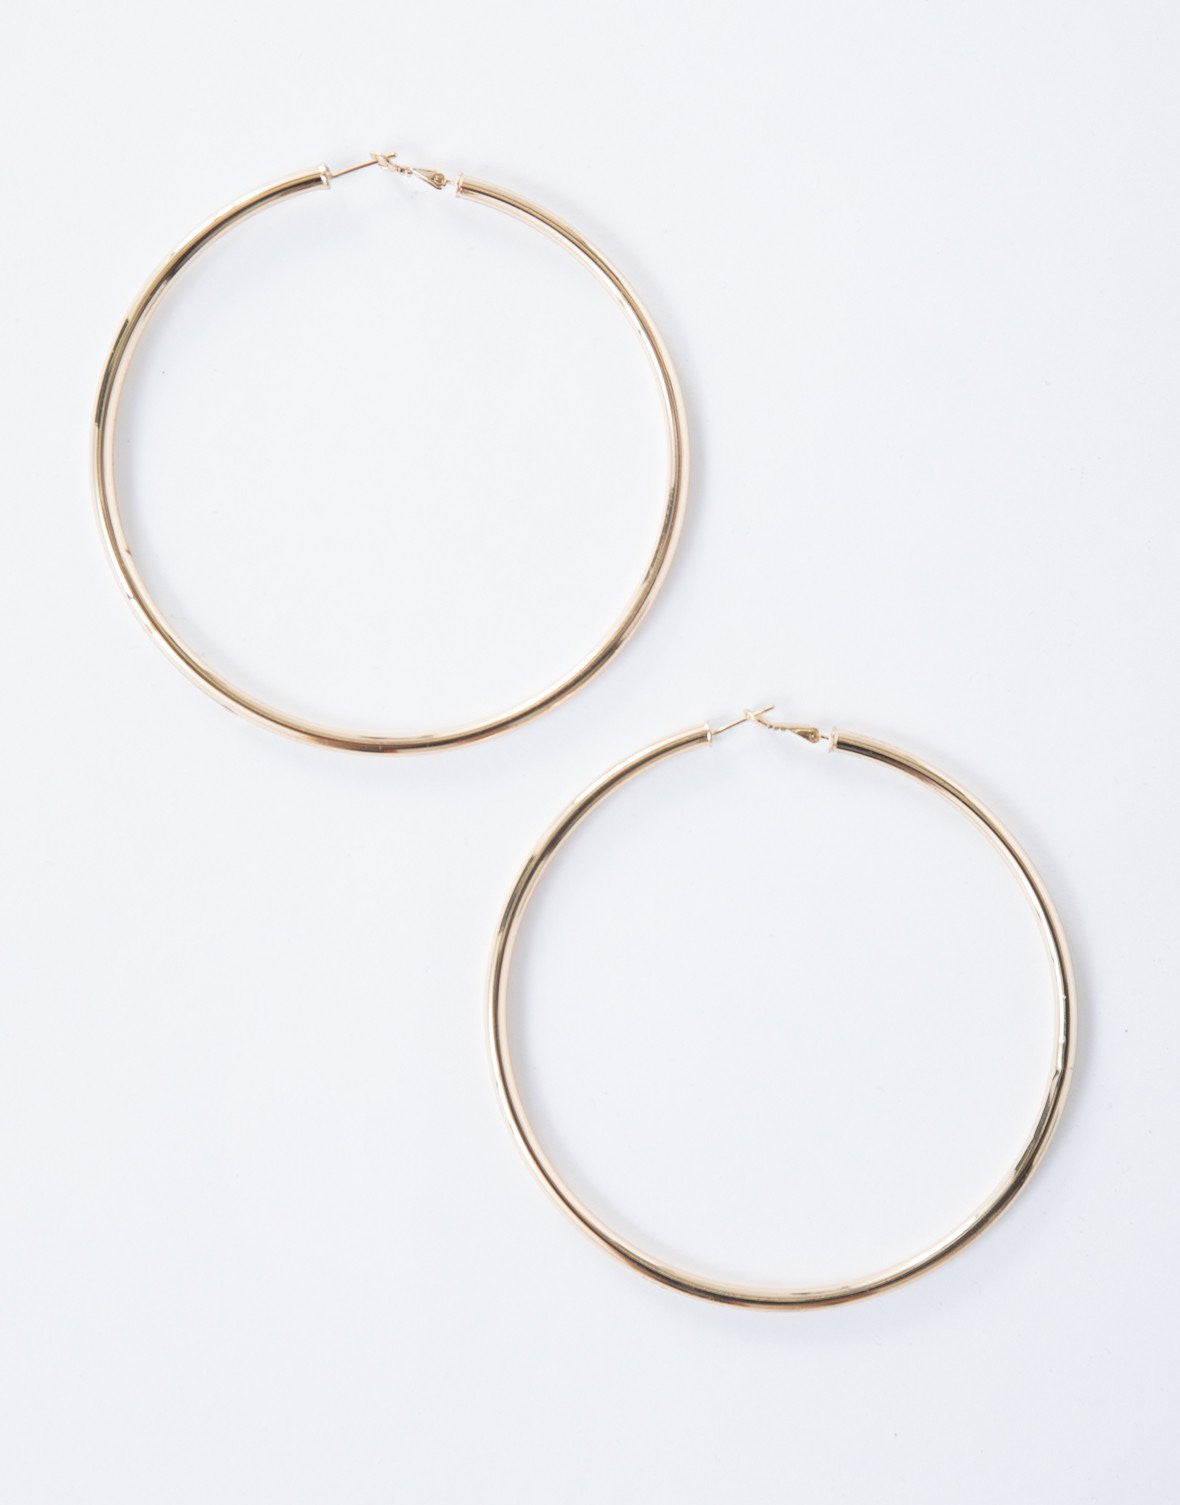 Gold Chunky Oversized Hoops - Front View